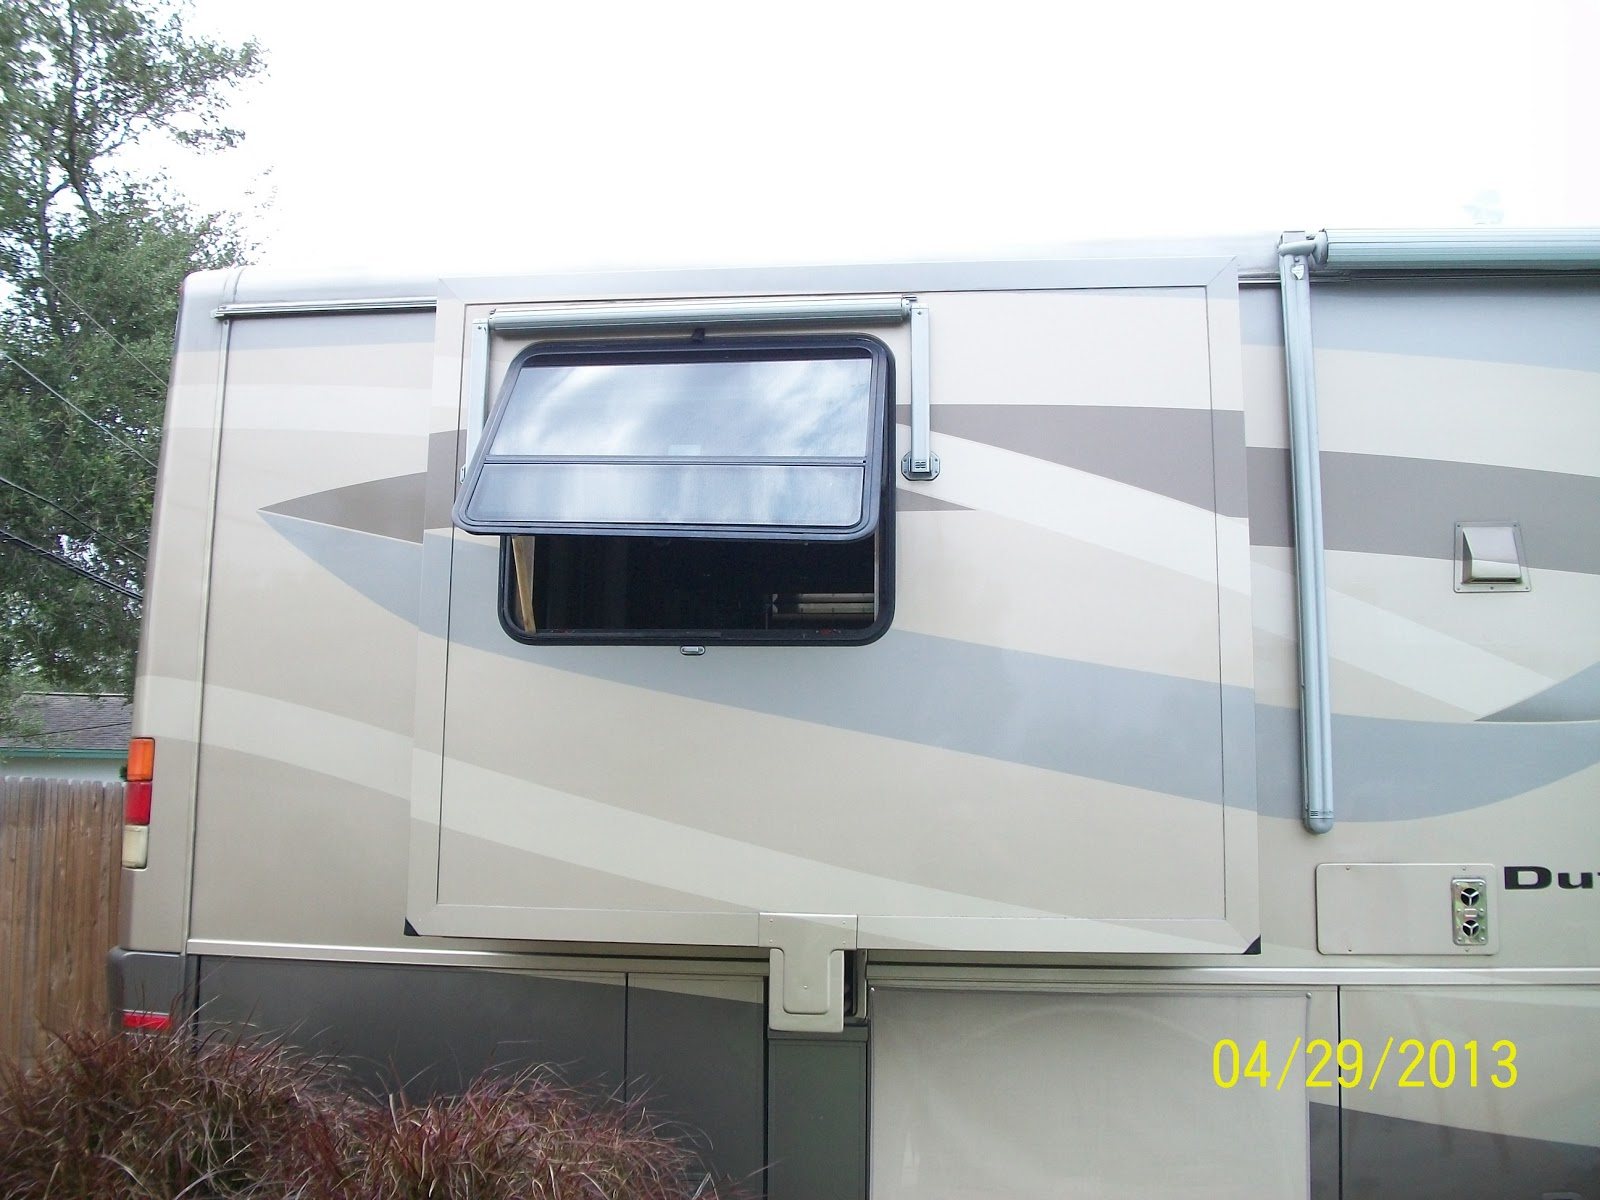 The Sayre Rv Odyssey Emergency Escape Window Test